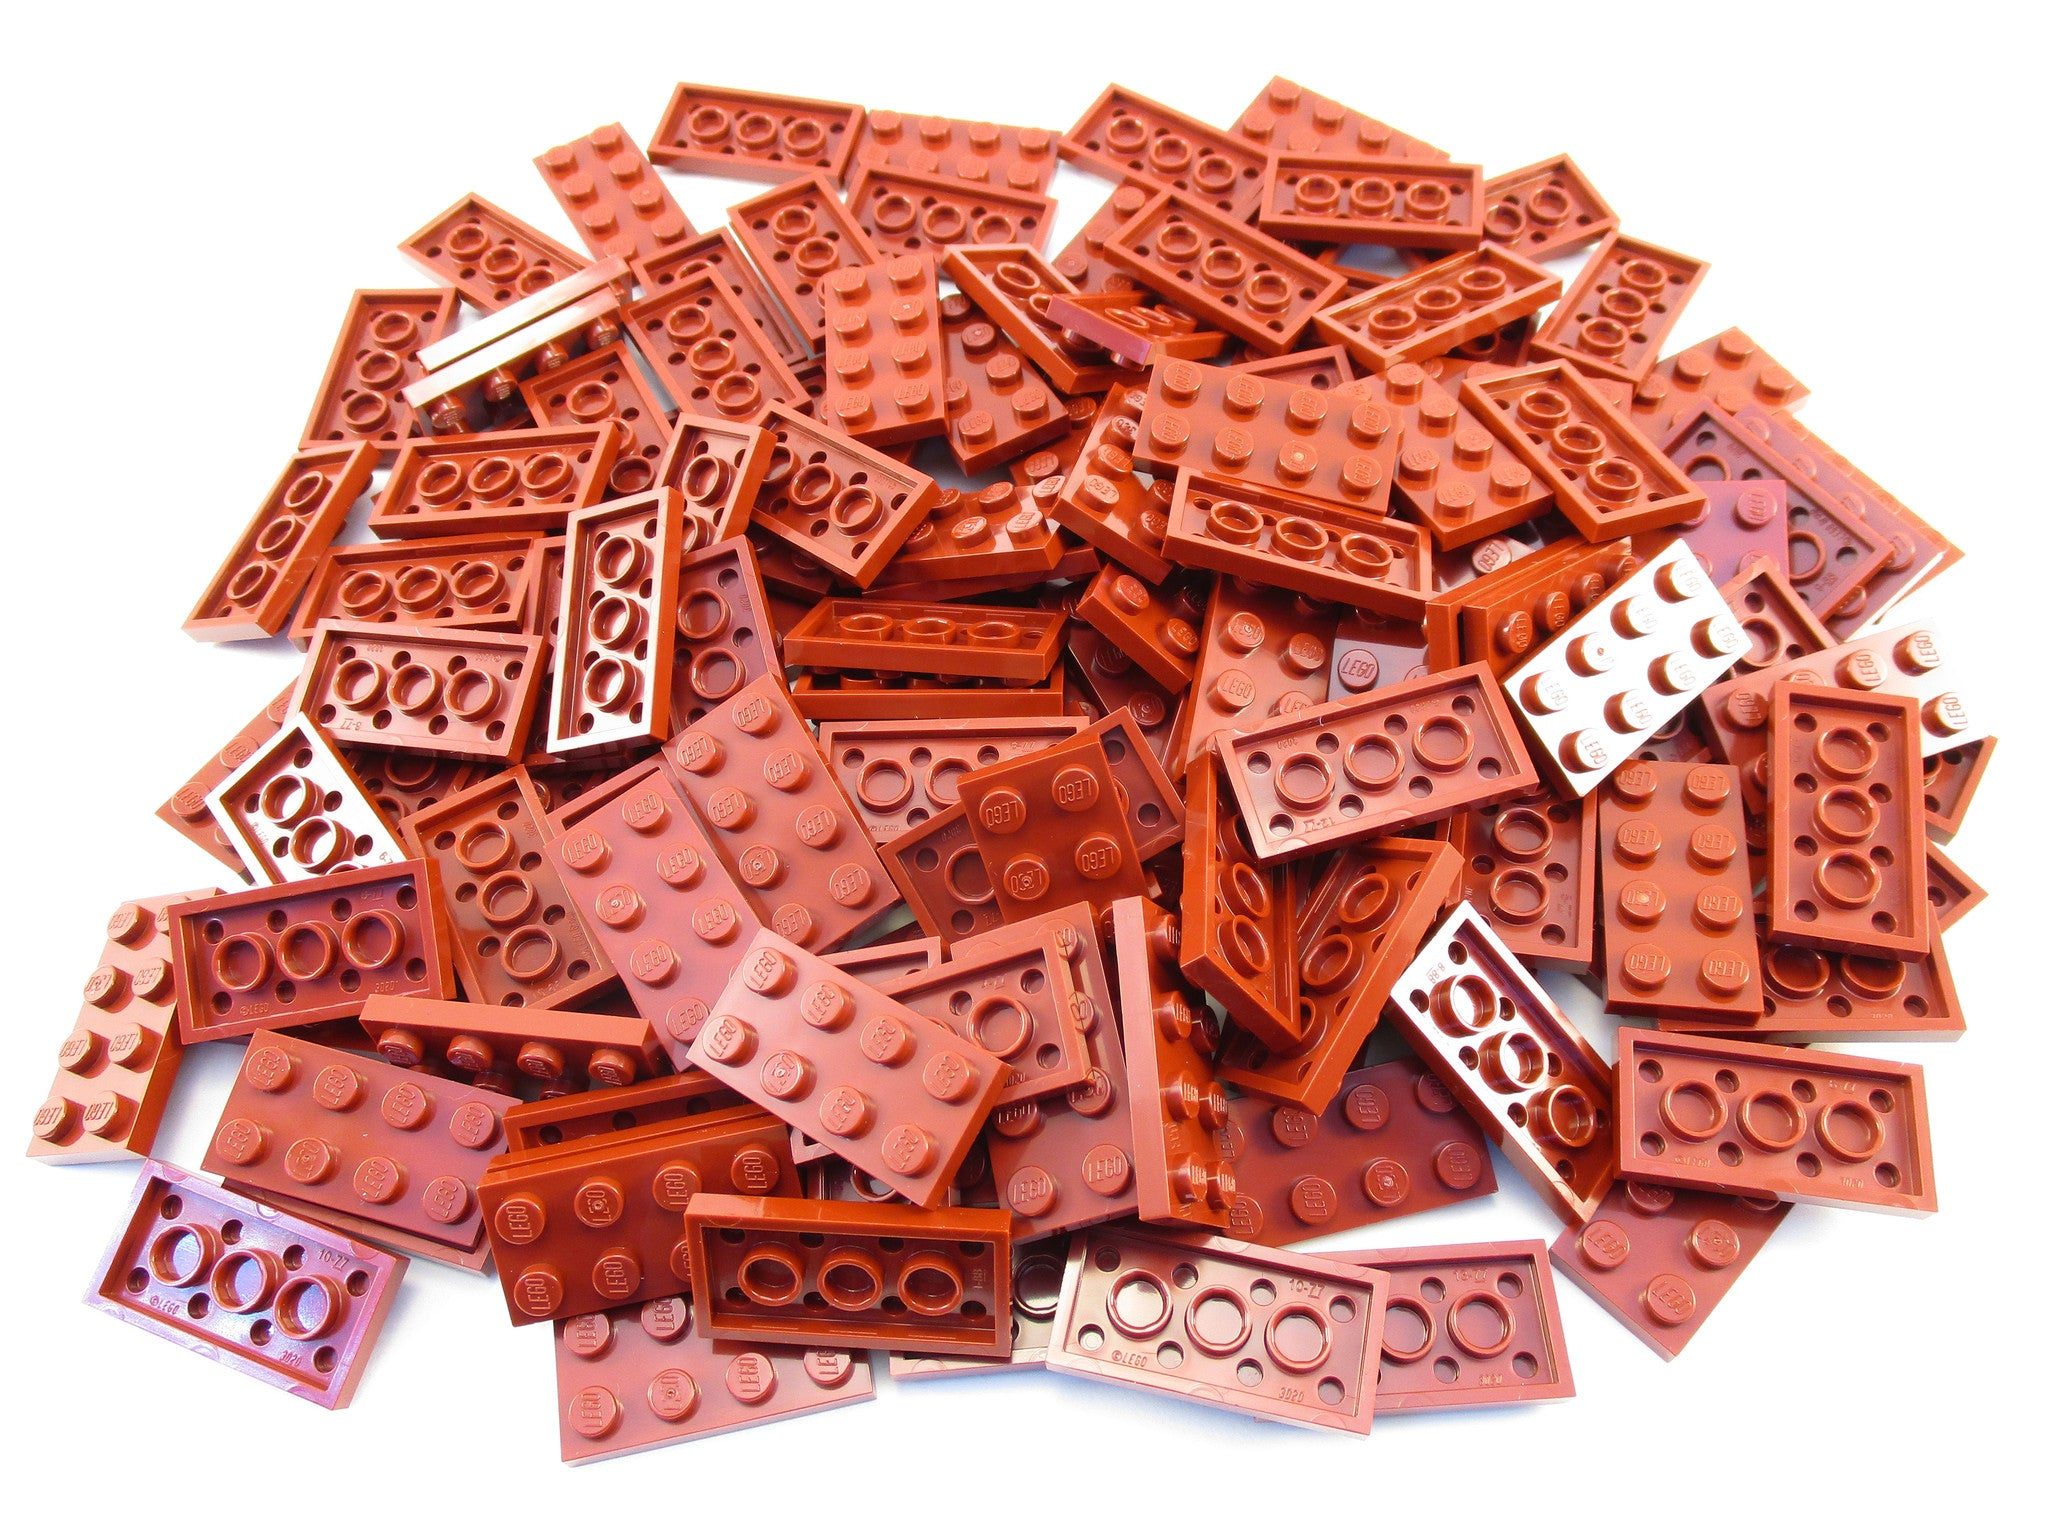 LEGO Dark Red Plate 2x4 Lot of 100 Parts Pieces 3020